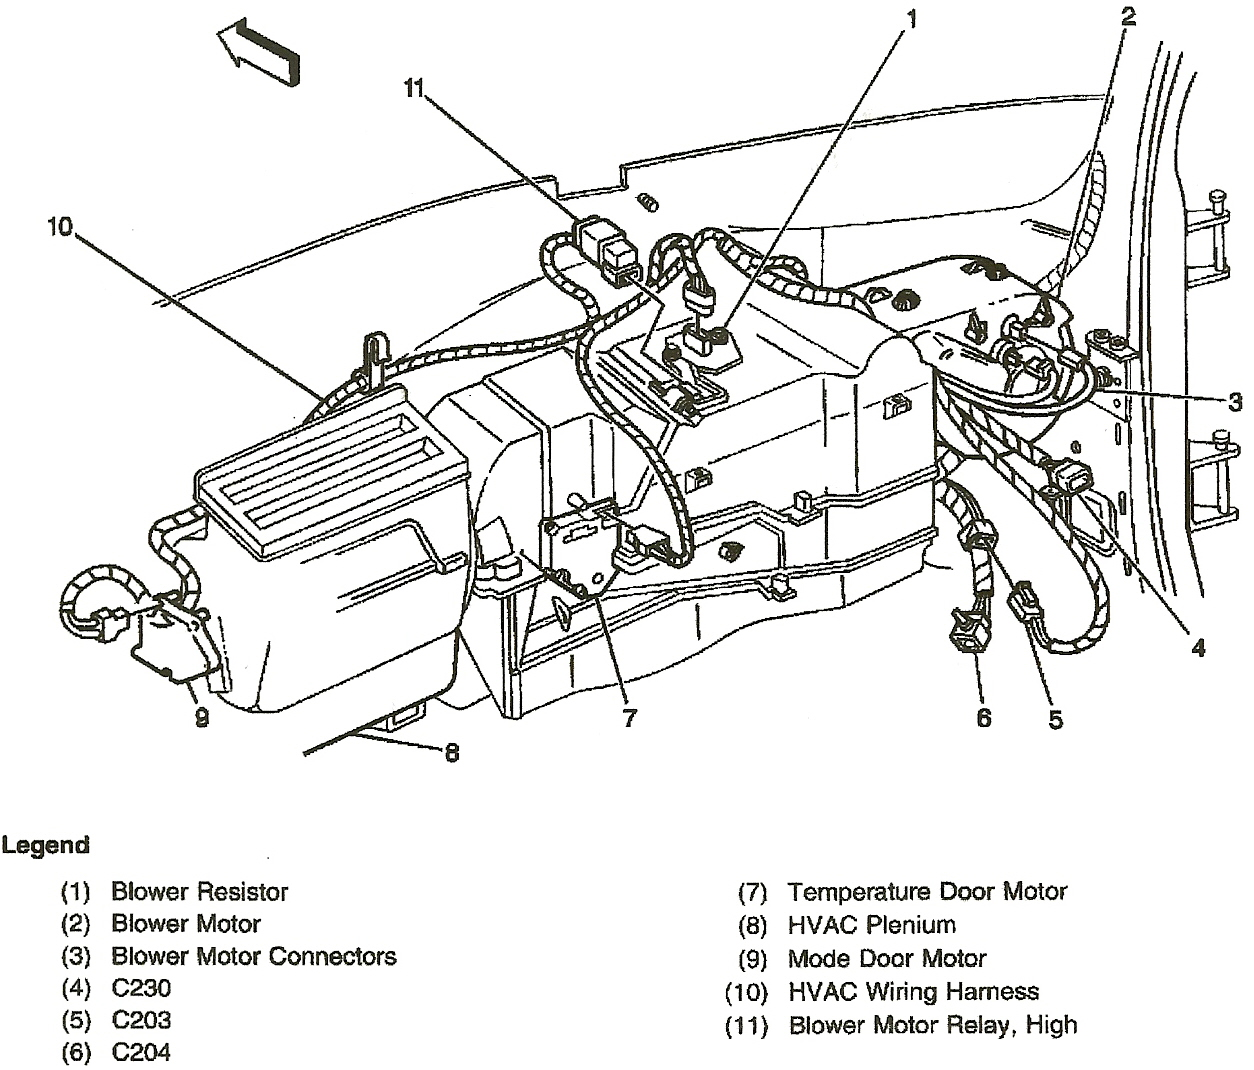 1999 Silverado Blower Motor Wiring Diagram Reinvent Your 2001 Gmc Sierra Diagrams How To Test A Chevy Suburban My Pro Street Rh Prostreetonline Com 1995 1500